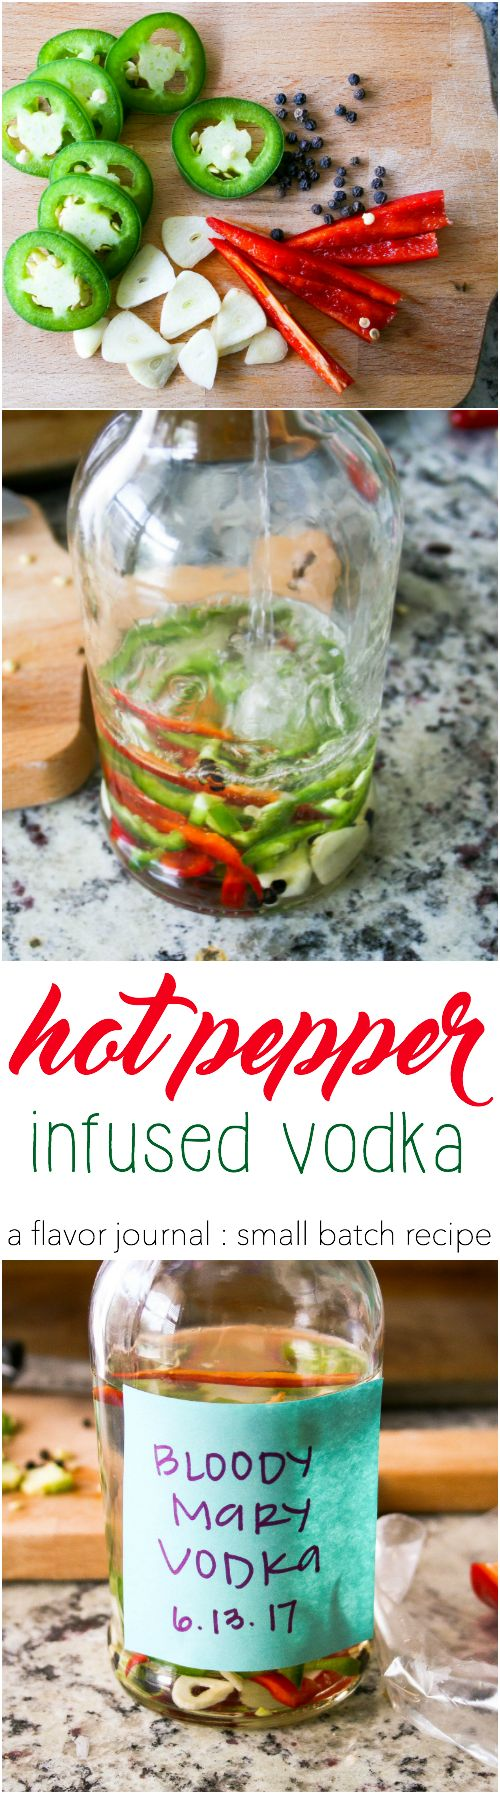 spicy peppers, garlic, and black peppercorns are infused into vodka to create a killer hot pepper infused vodka that's perfect for bloody mary cocktails!   hot pepper infused vodka http://aflavorjournal.com/hot-pepper-infused-vodka/